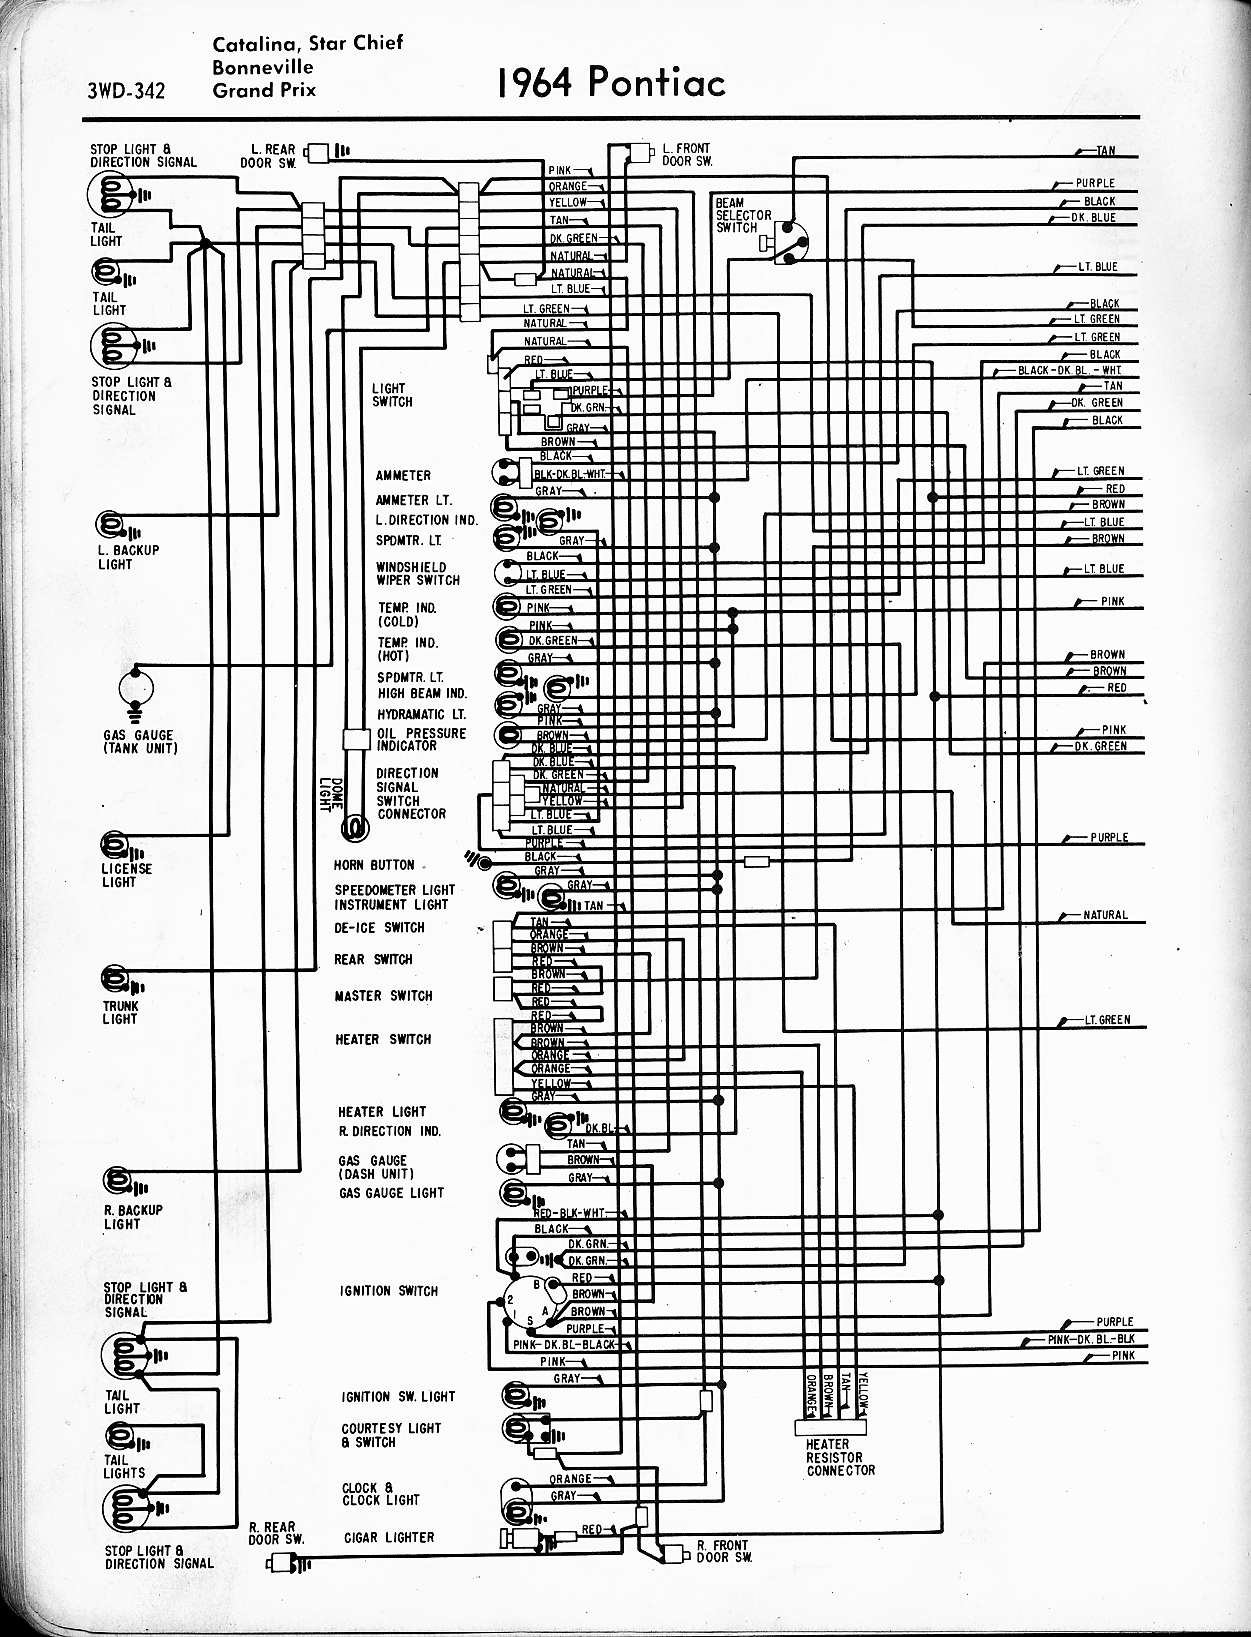 Wiring Diagram For Pontiac Bonneville Opinions About 99 Fuse Box 1957 1965 Rh Oldcarmanualproject Com 1999